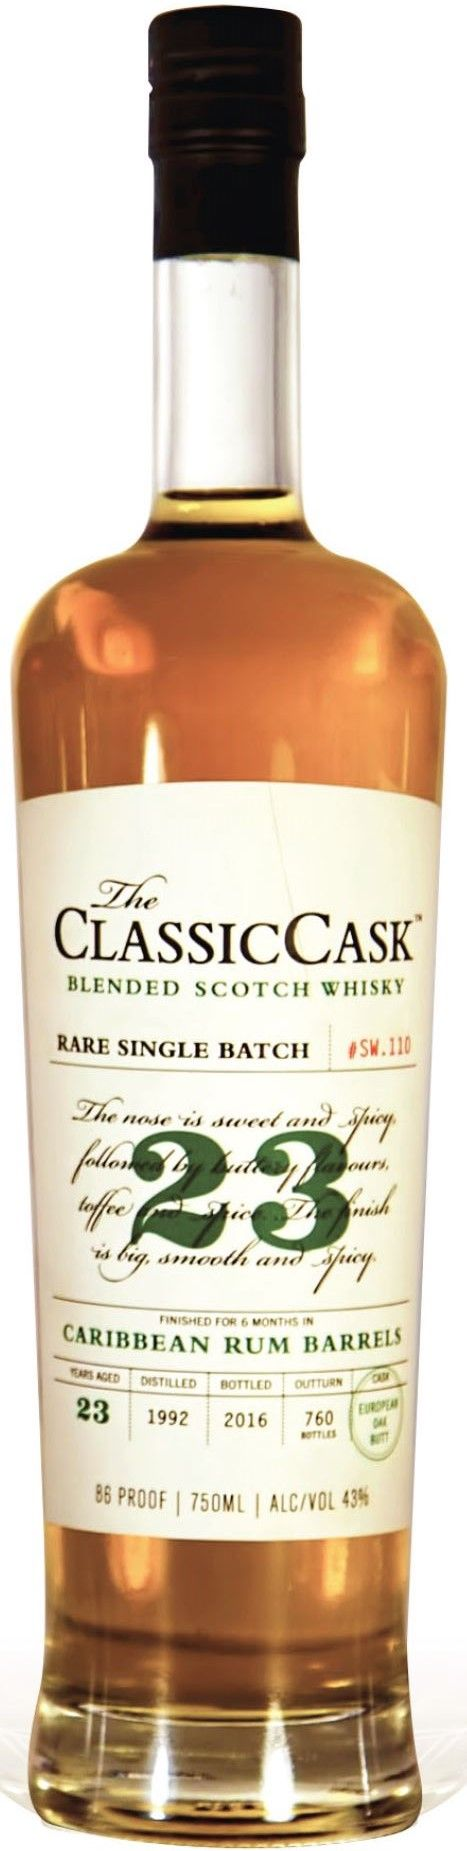 Classic Cask 23 Yr Caribbean Rum Barrel Finished Single Malt Scotch